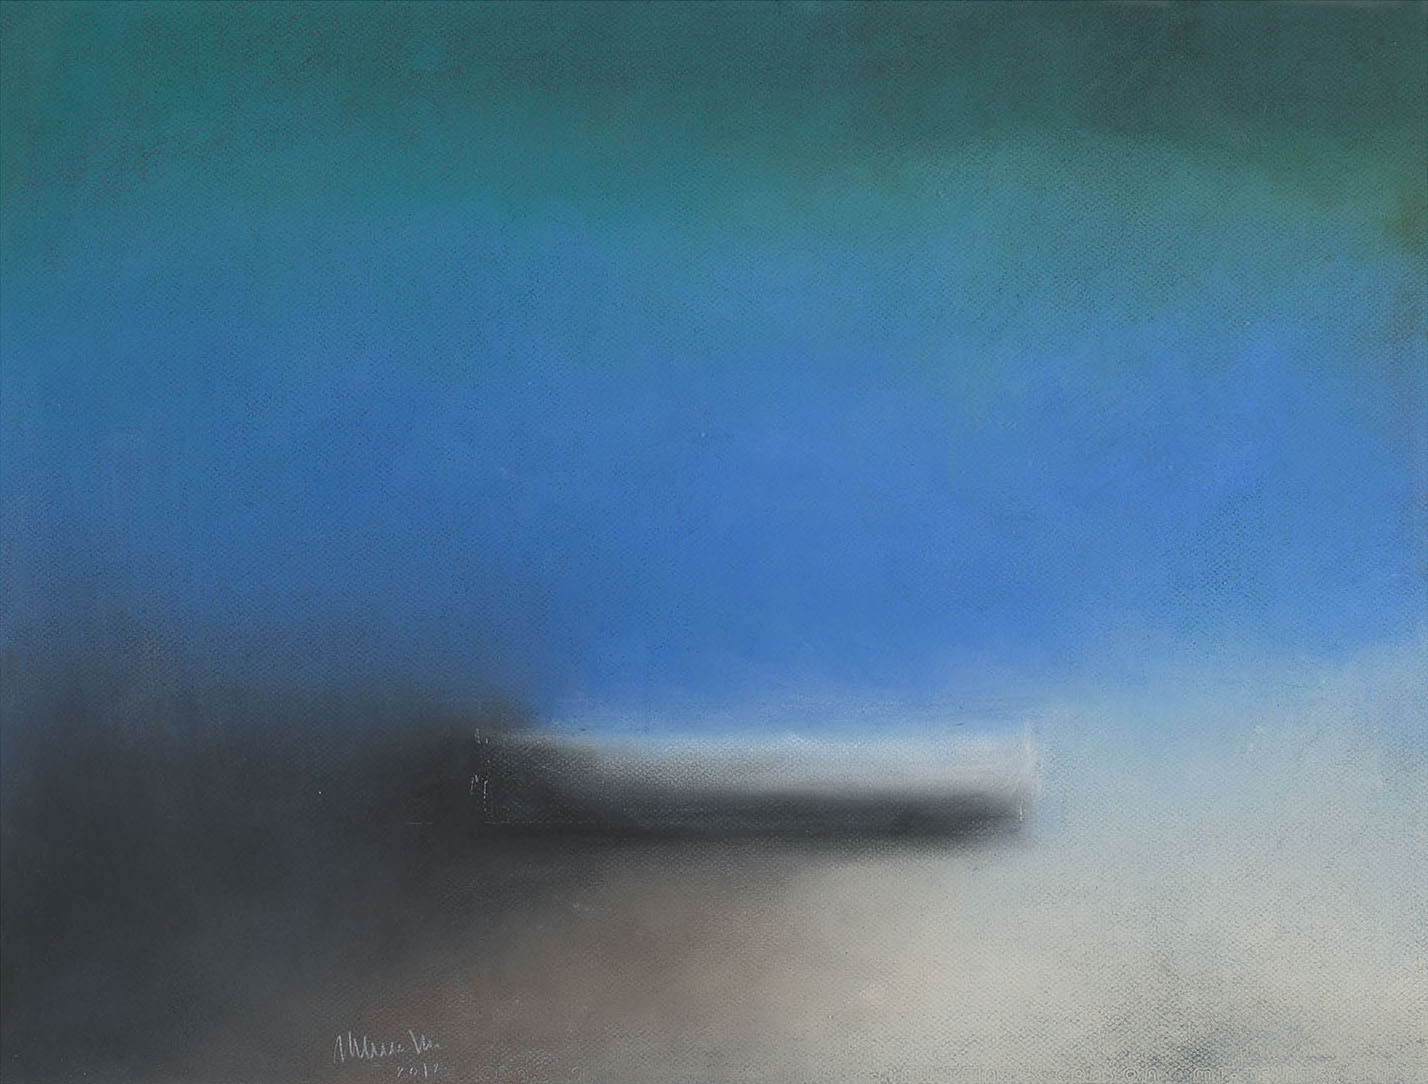 Daydream (boat), 2012, pastel on paper, cm 50 x 65